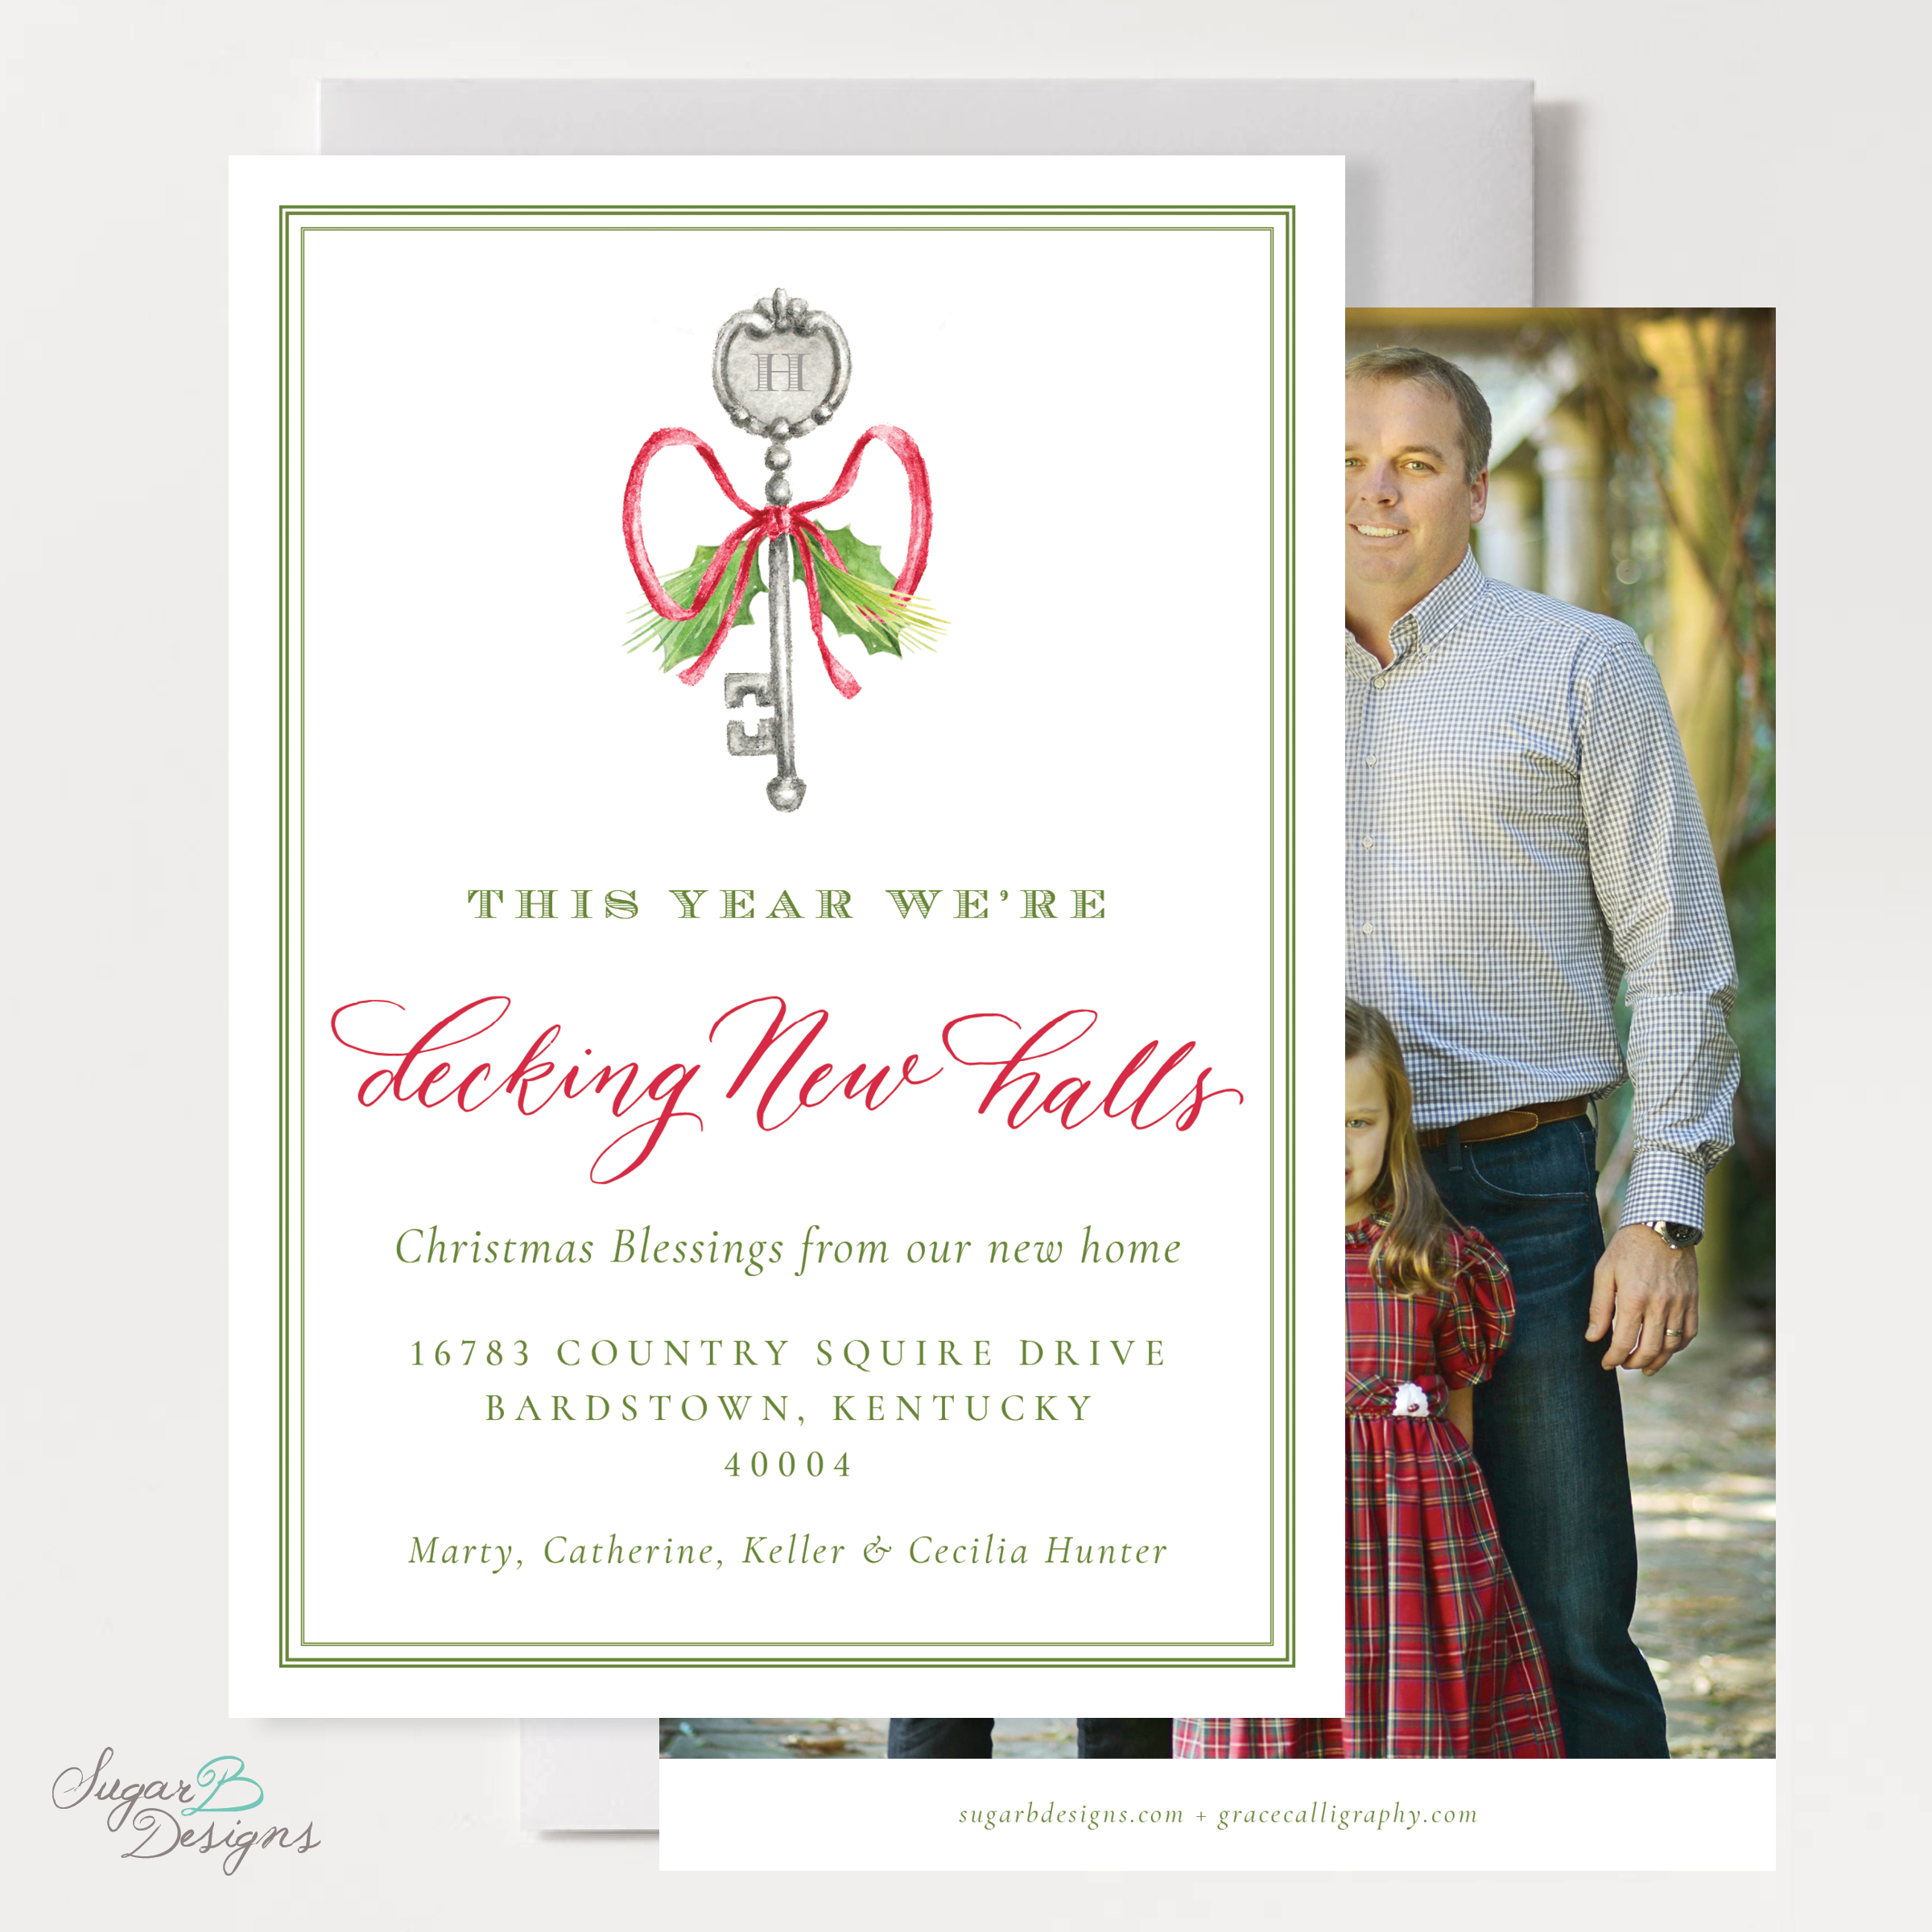 Potter Key Moving Christmas Card front and back by Sugar B Designs.png